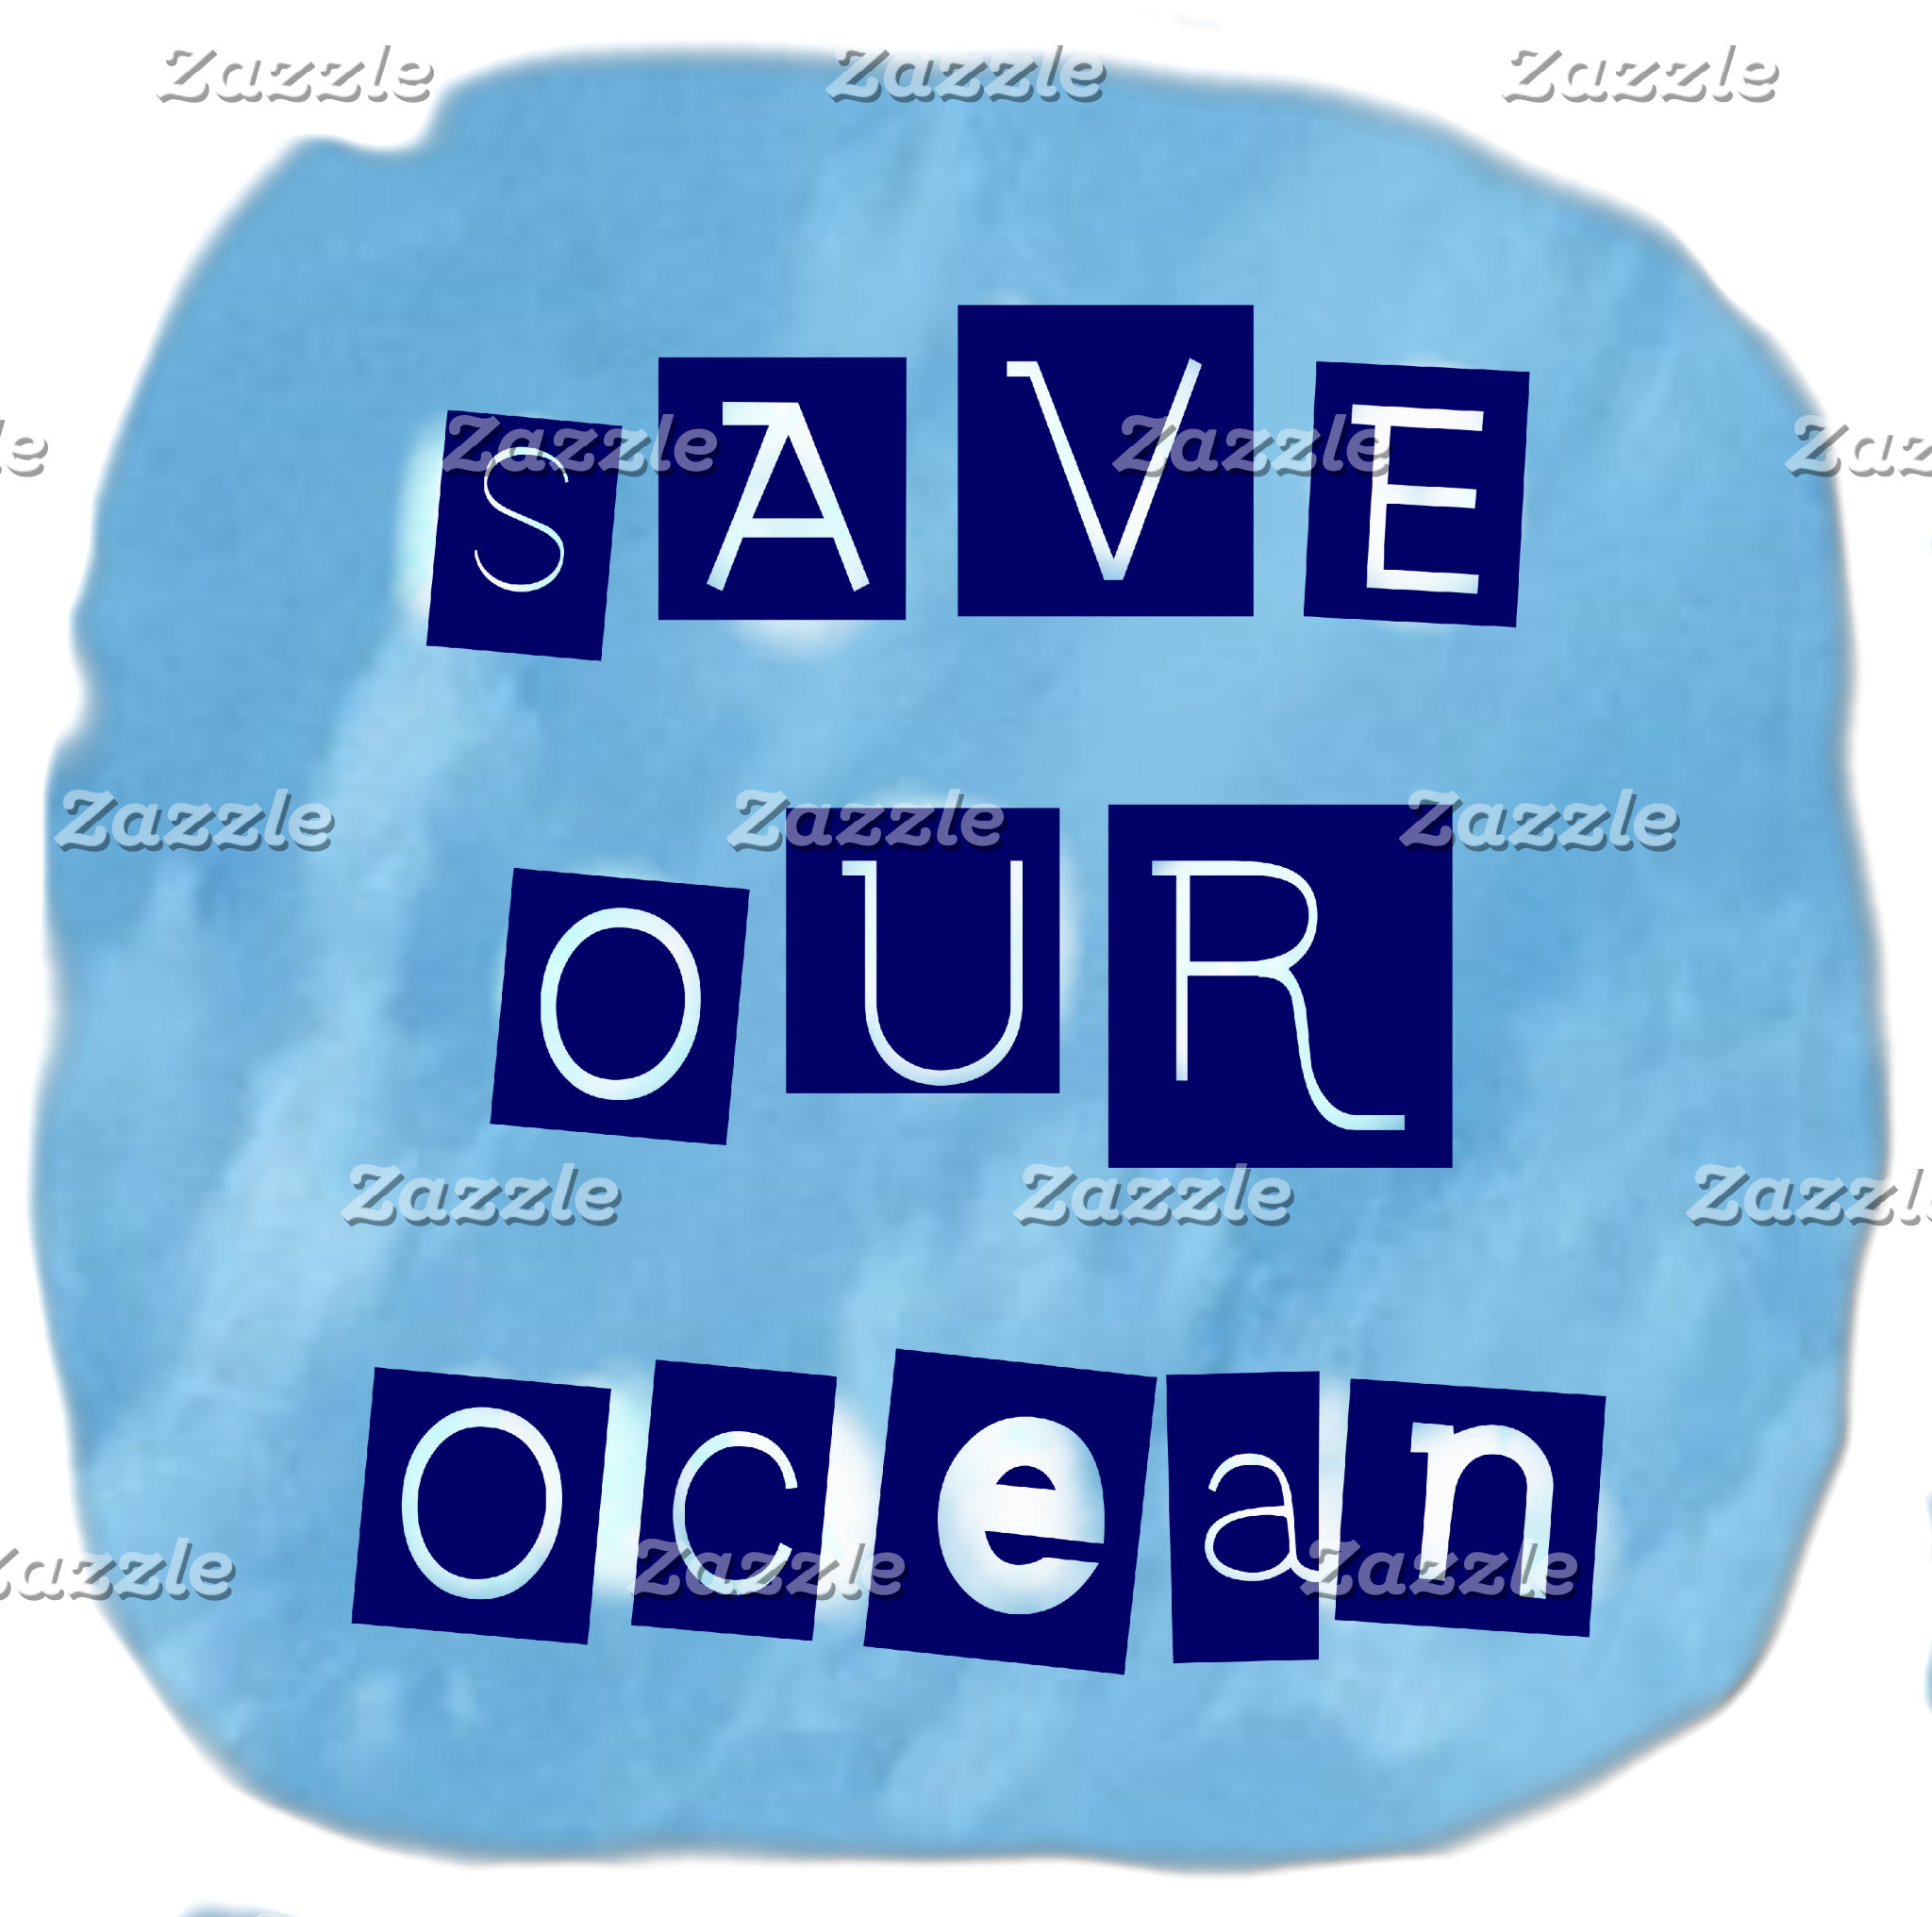 Save our _________________